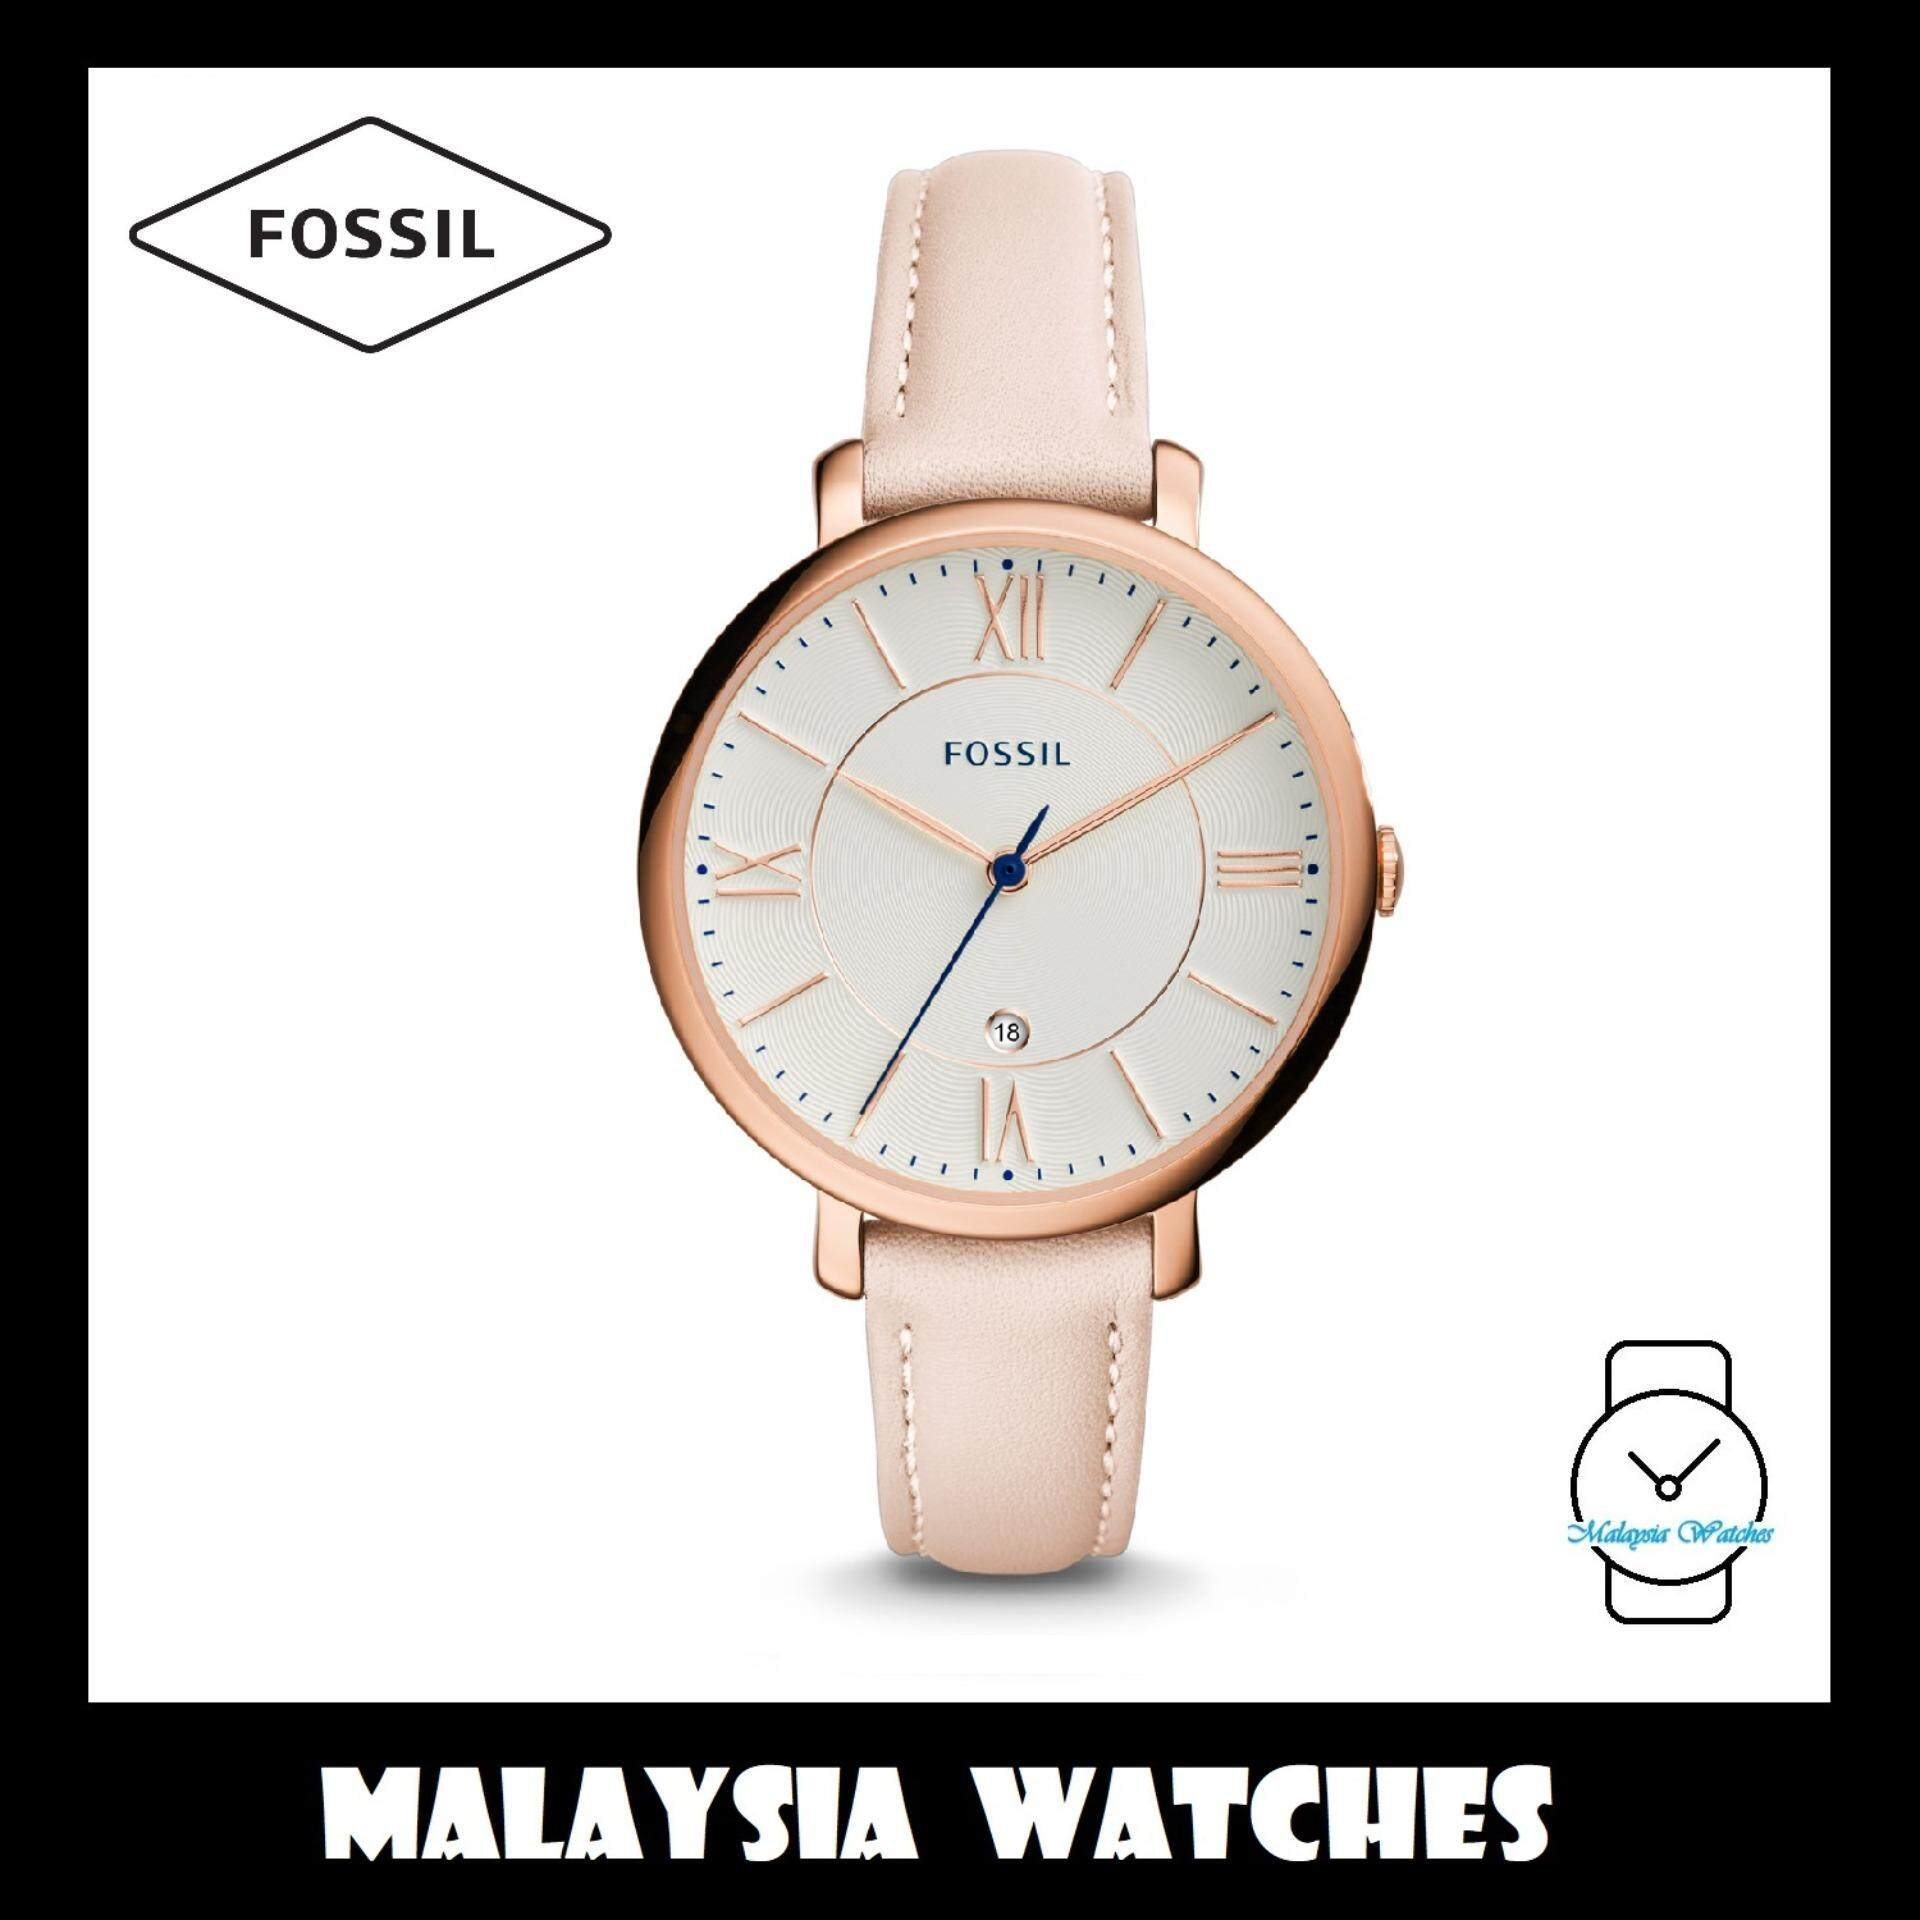 Fossil Women Watches Price In Malaysia Best Es3880 Jam Tangan Wanita Original Official Warranty Es3988 Jacqueline White Dial Leather Watch Light Pink